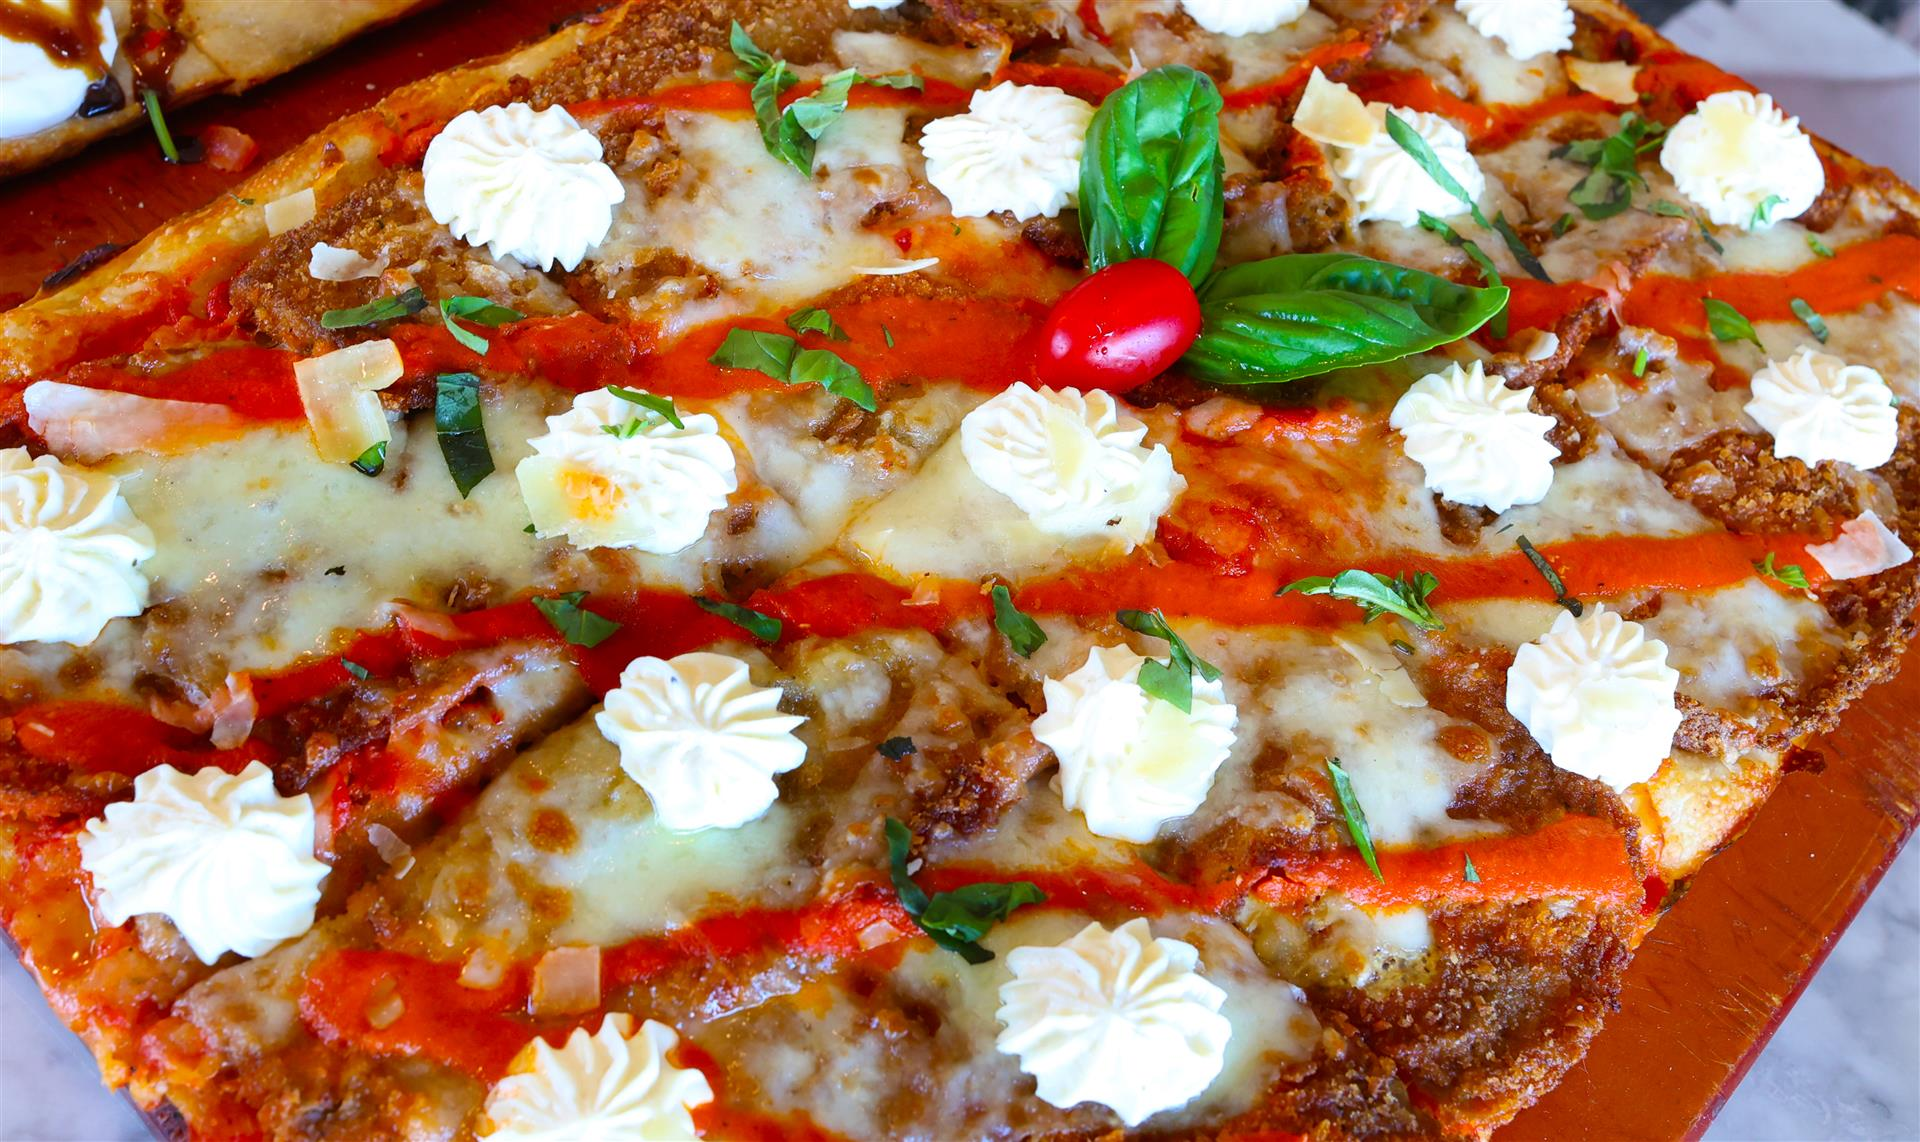 sicilian pizza with dollops of cheese on top and a vodka sauce drizzle